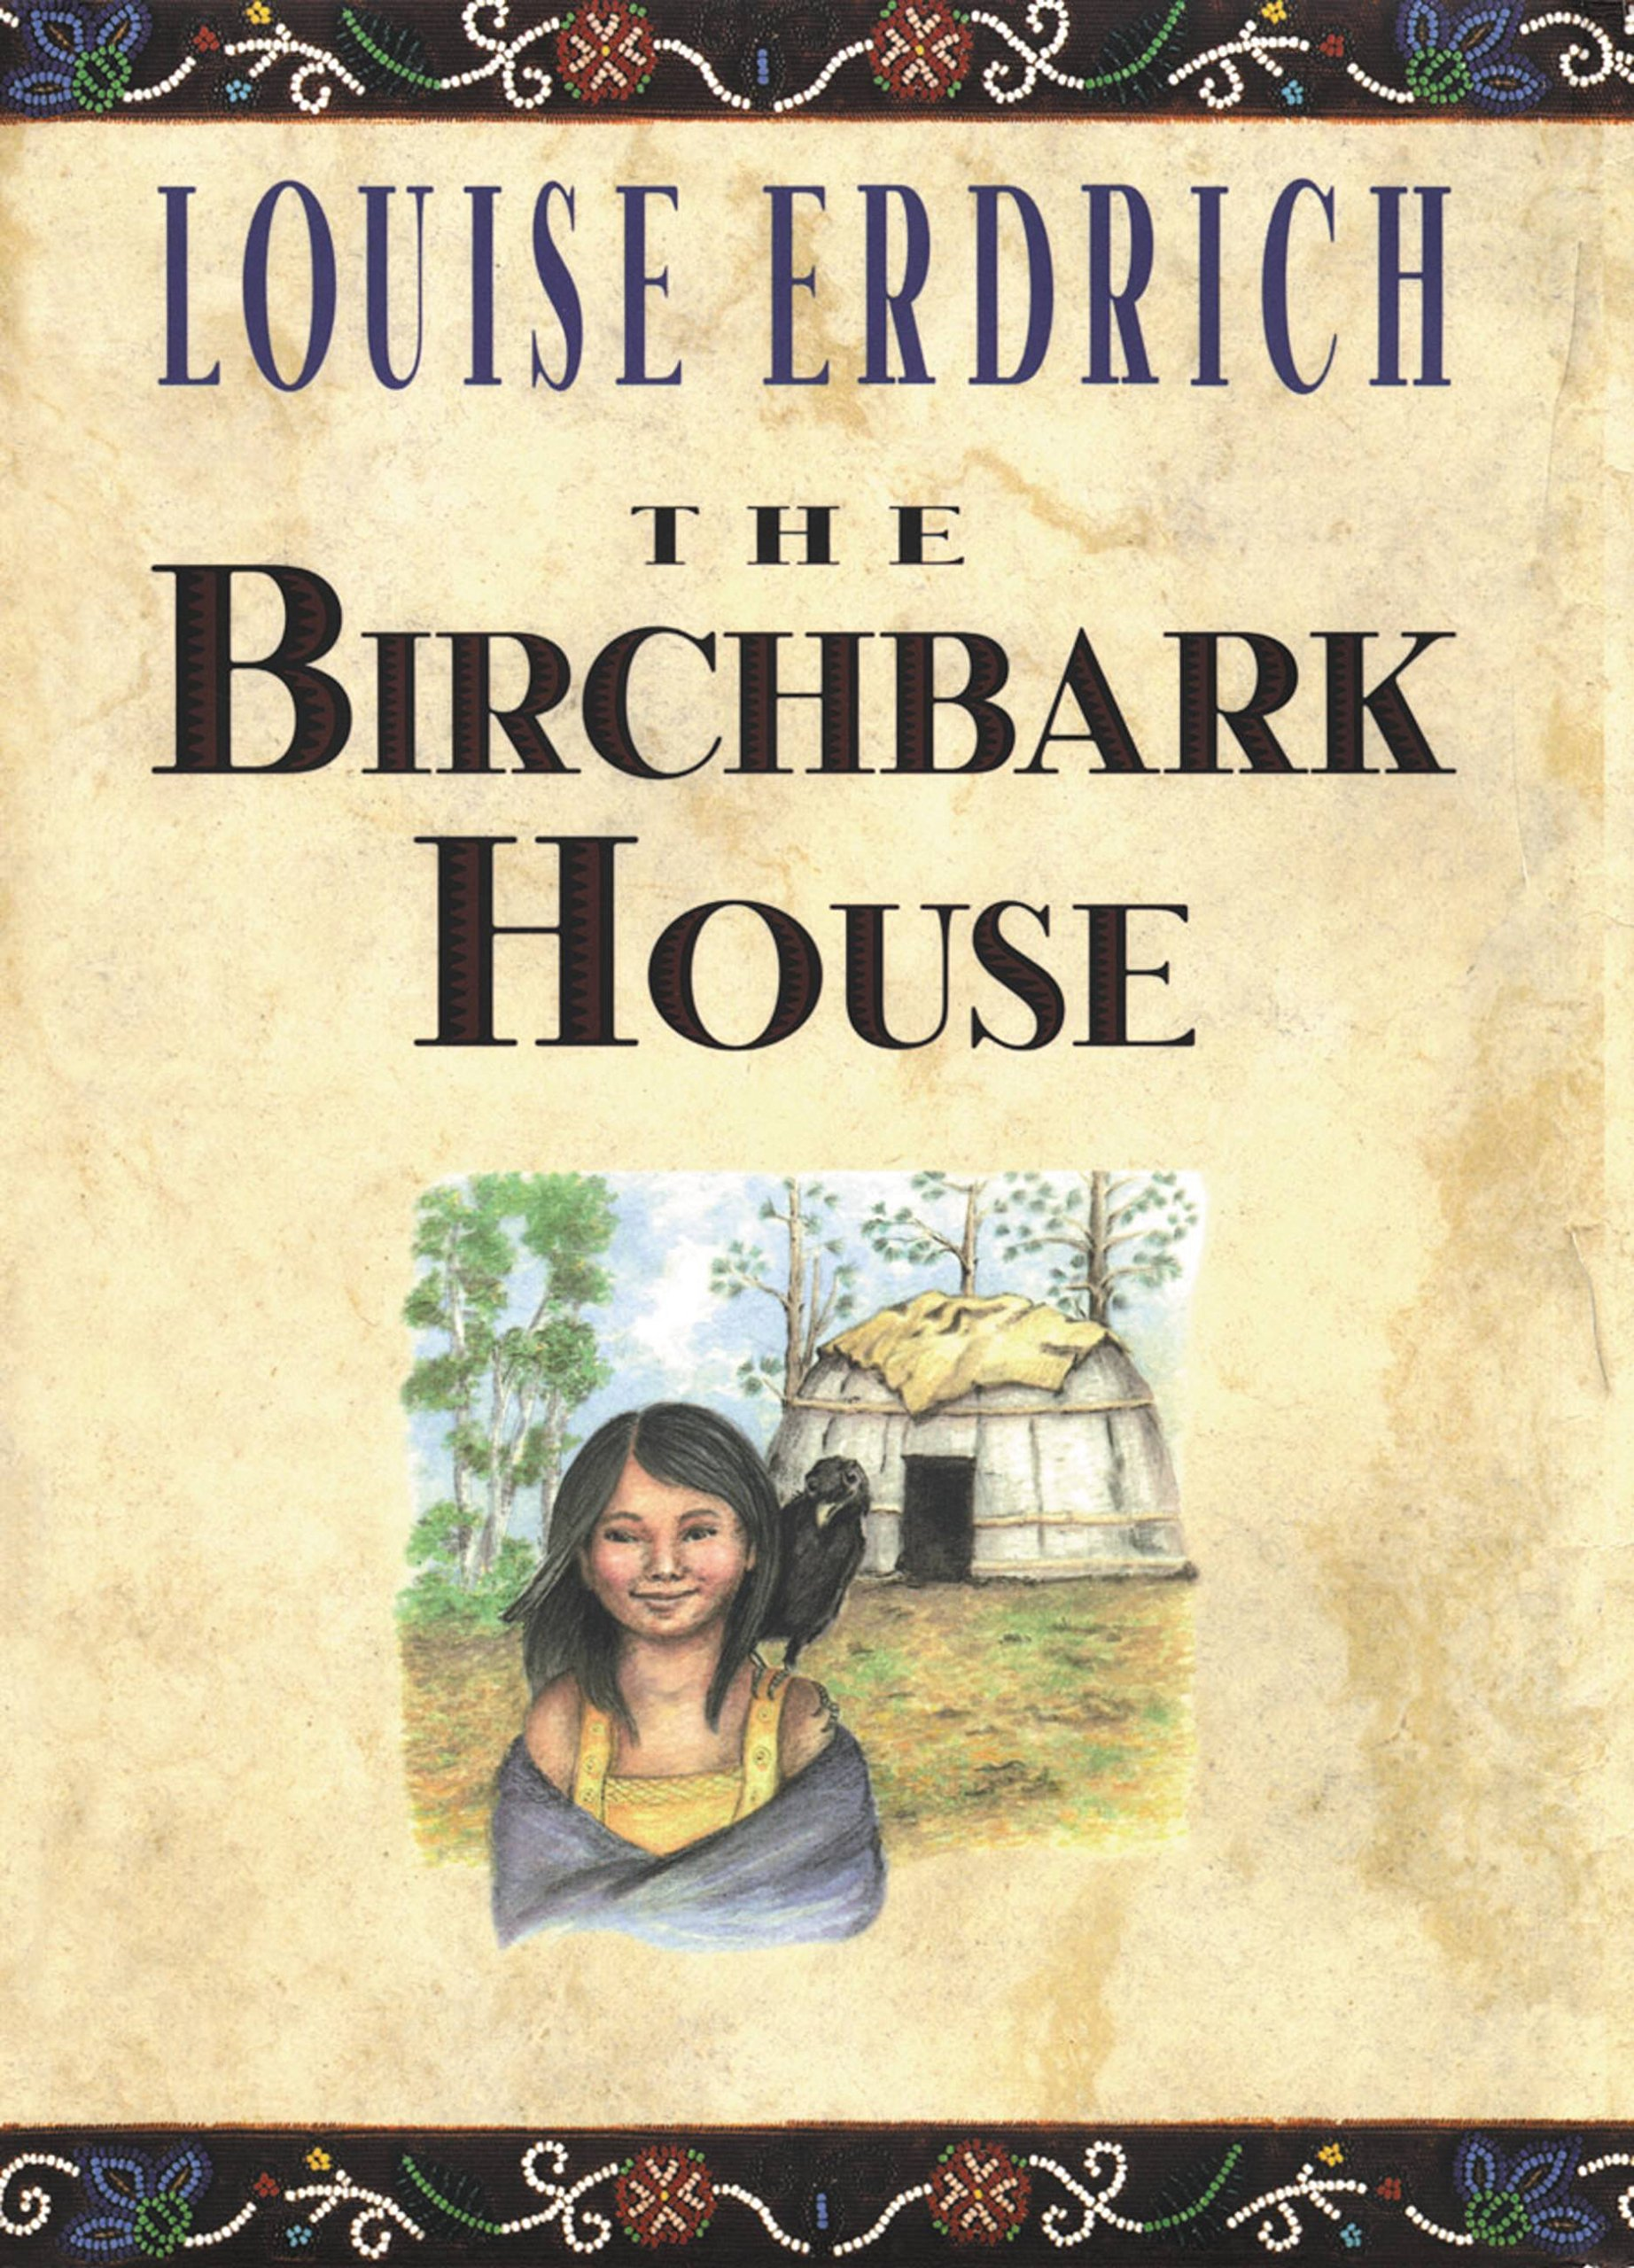 Book cover of The Birchbark House